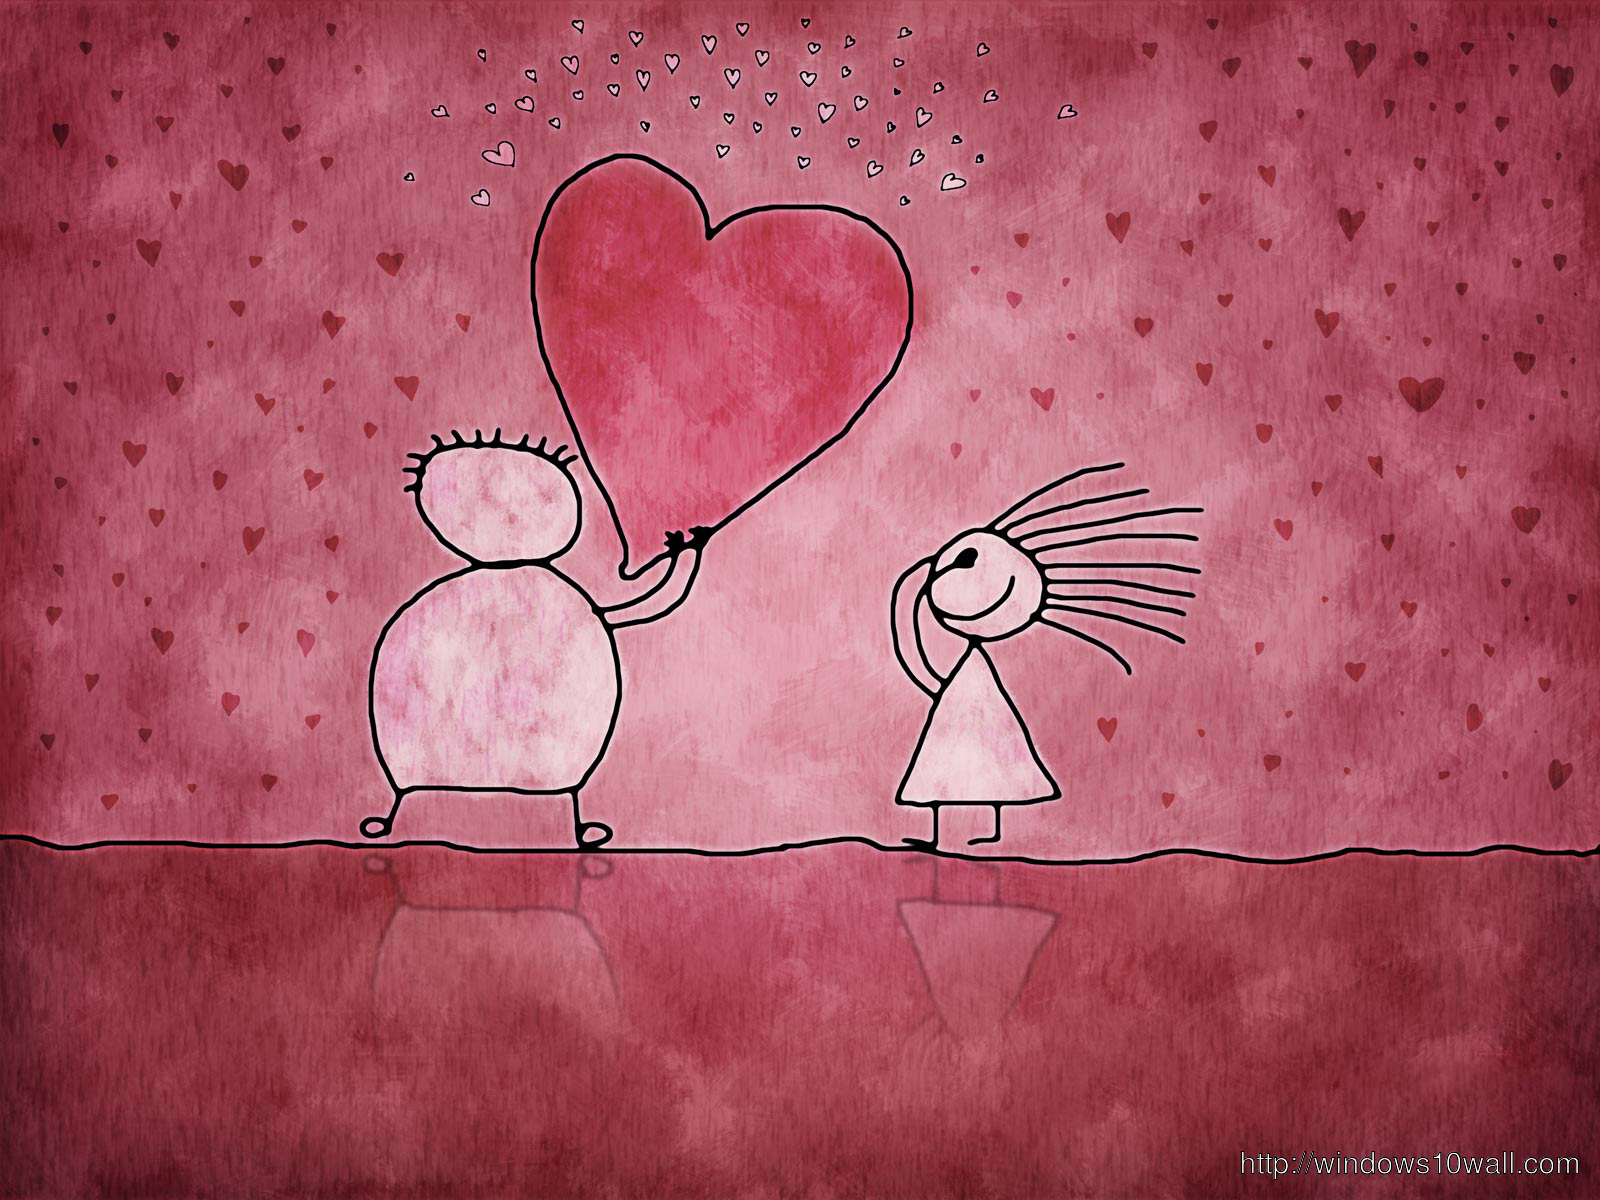 heart cartoons love wallpaper